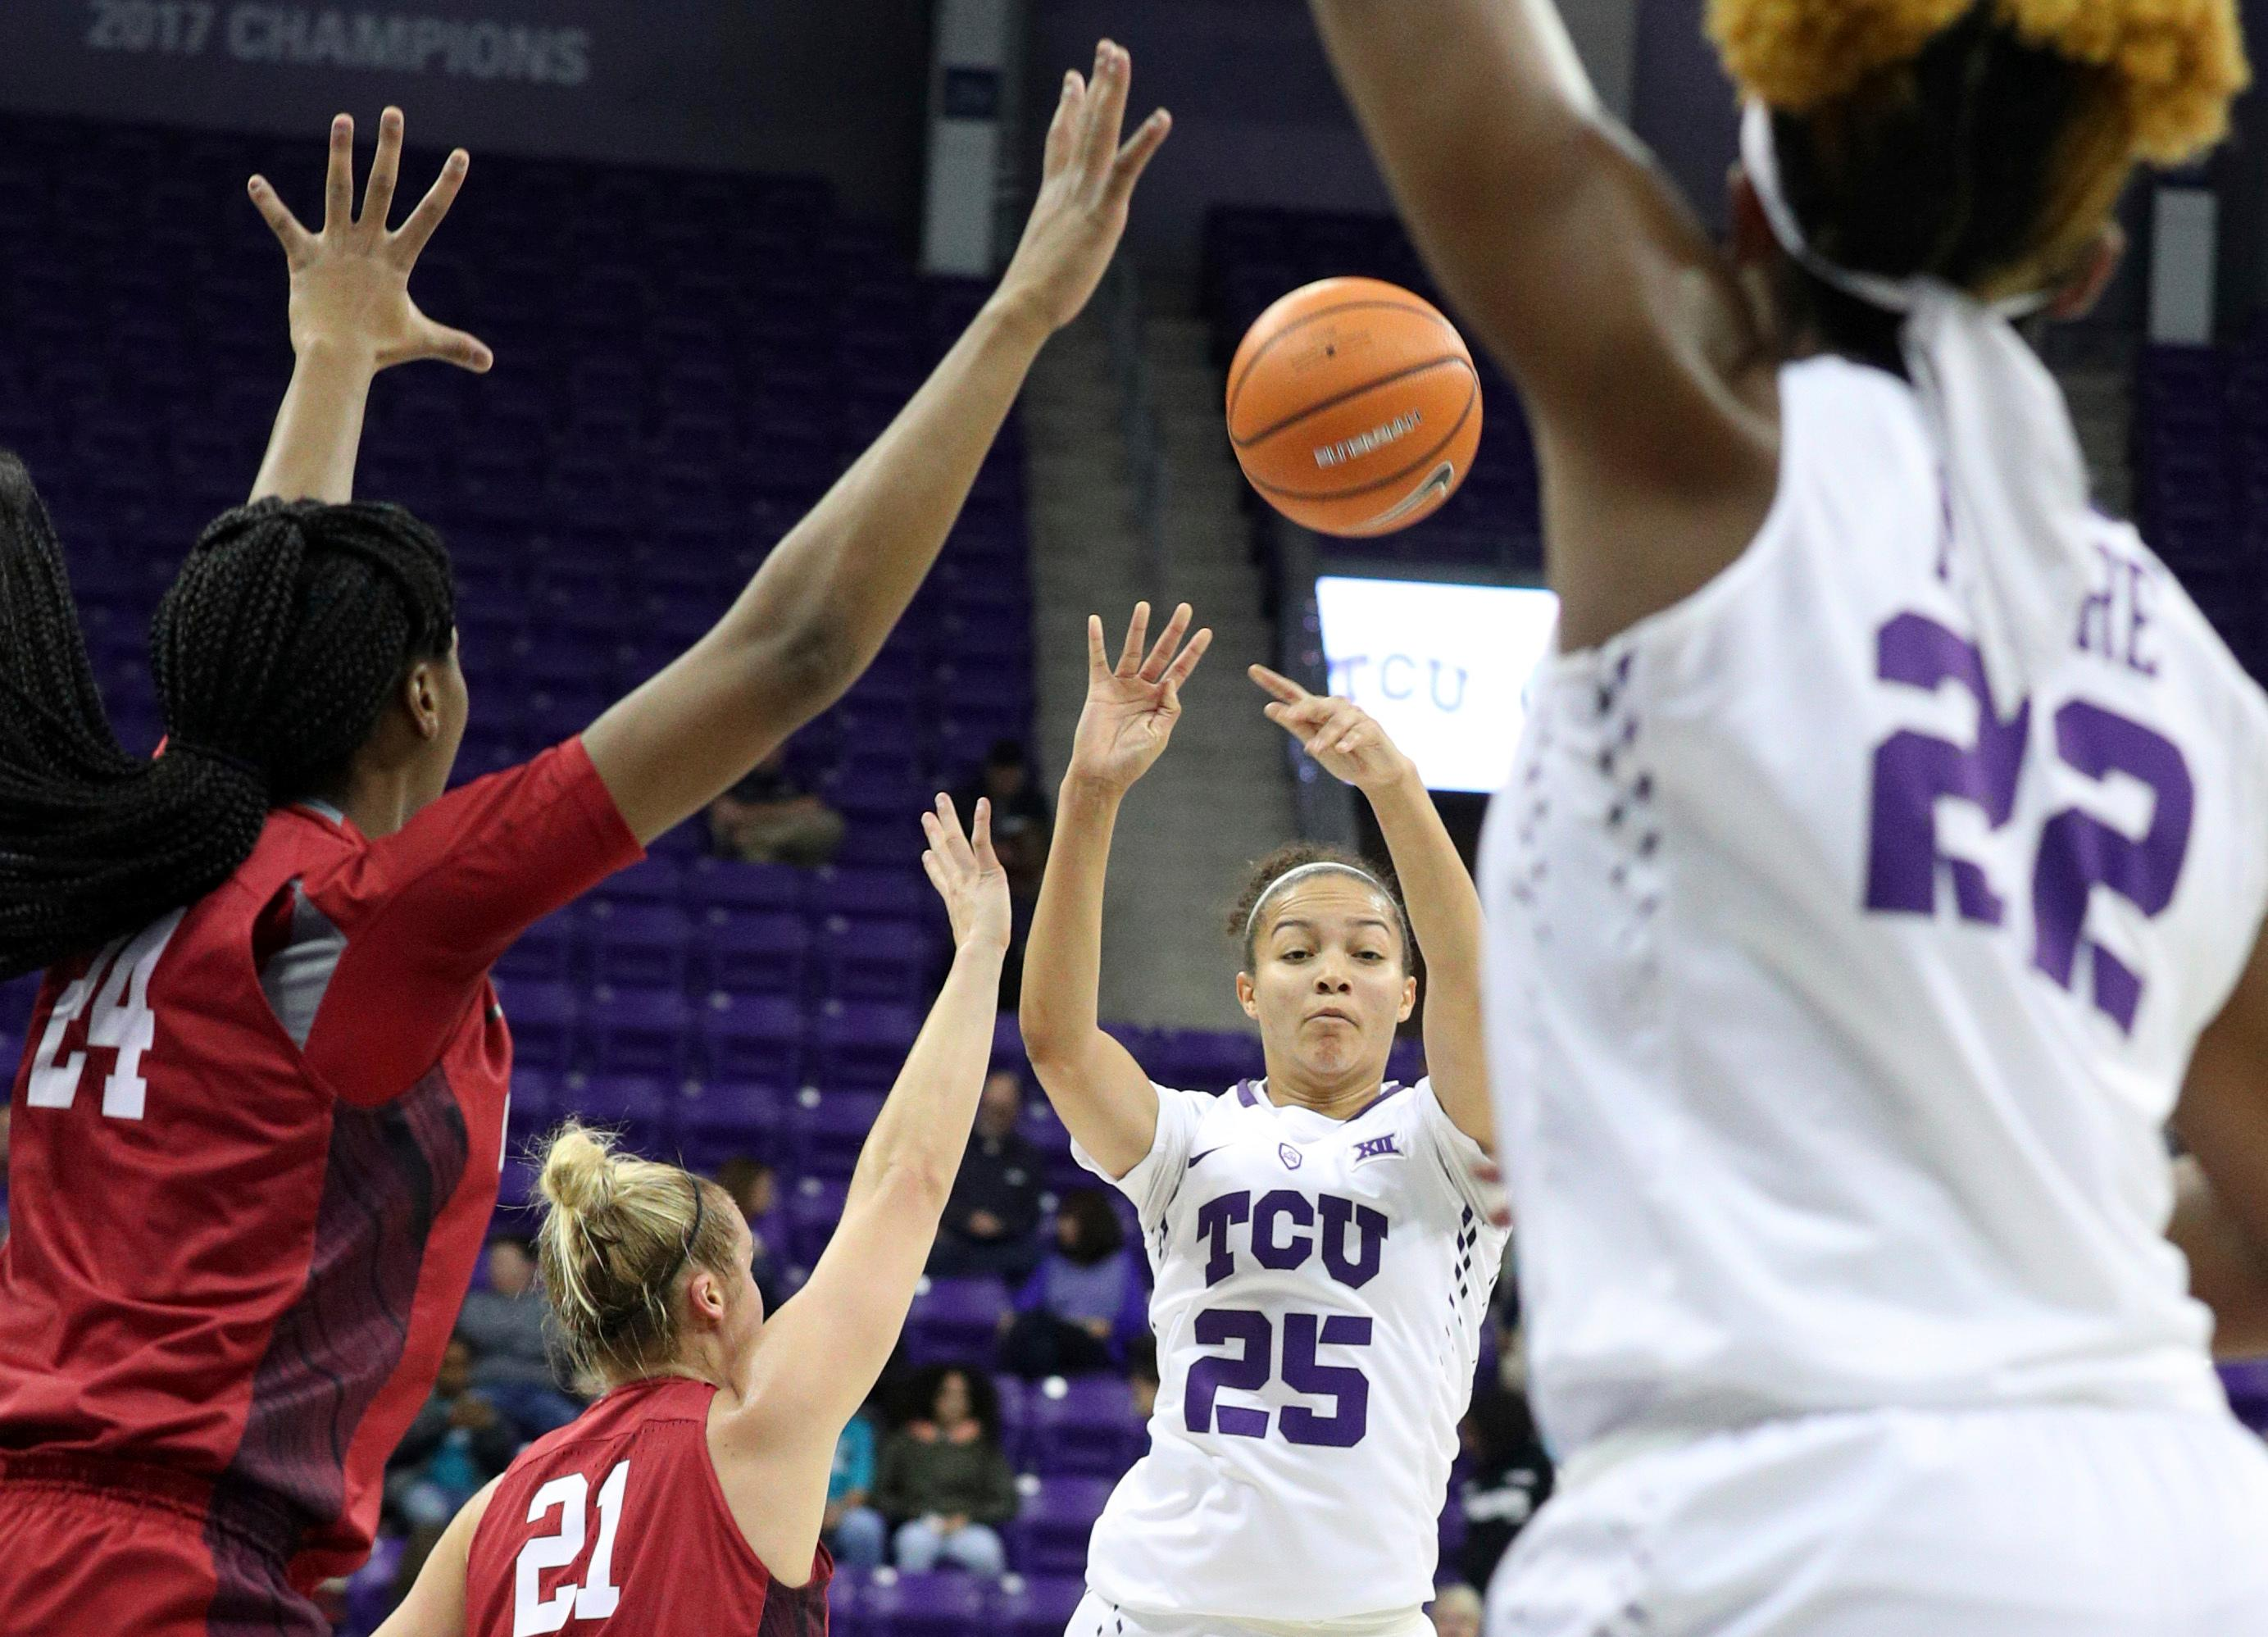 TCU guard Kianna Ray (25) passes the ball to TCU center Jordan Moore (22) during an NCAA college basketball game in Fort Worth, Texas, Saturday, Jan. 27, 2018. (Richard W. Rodriguez/Star-Telegram via AP)